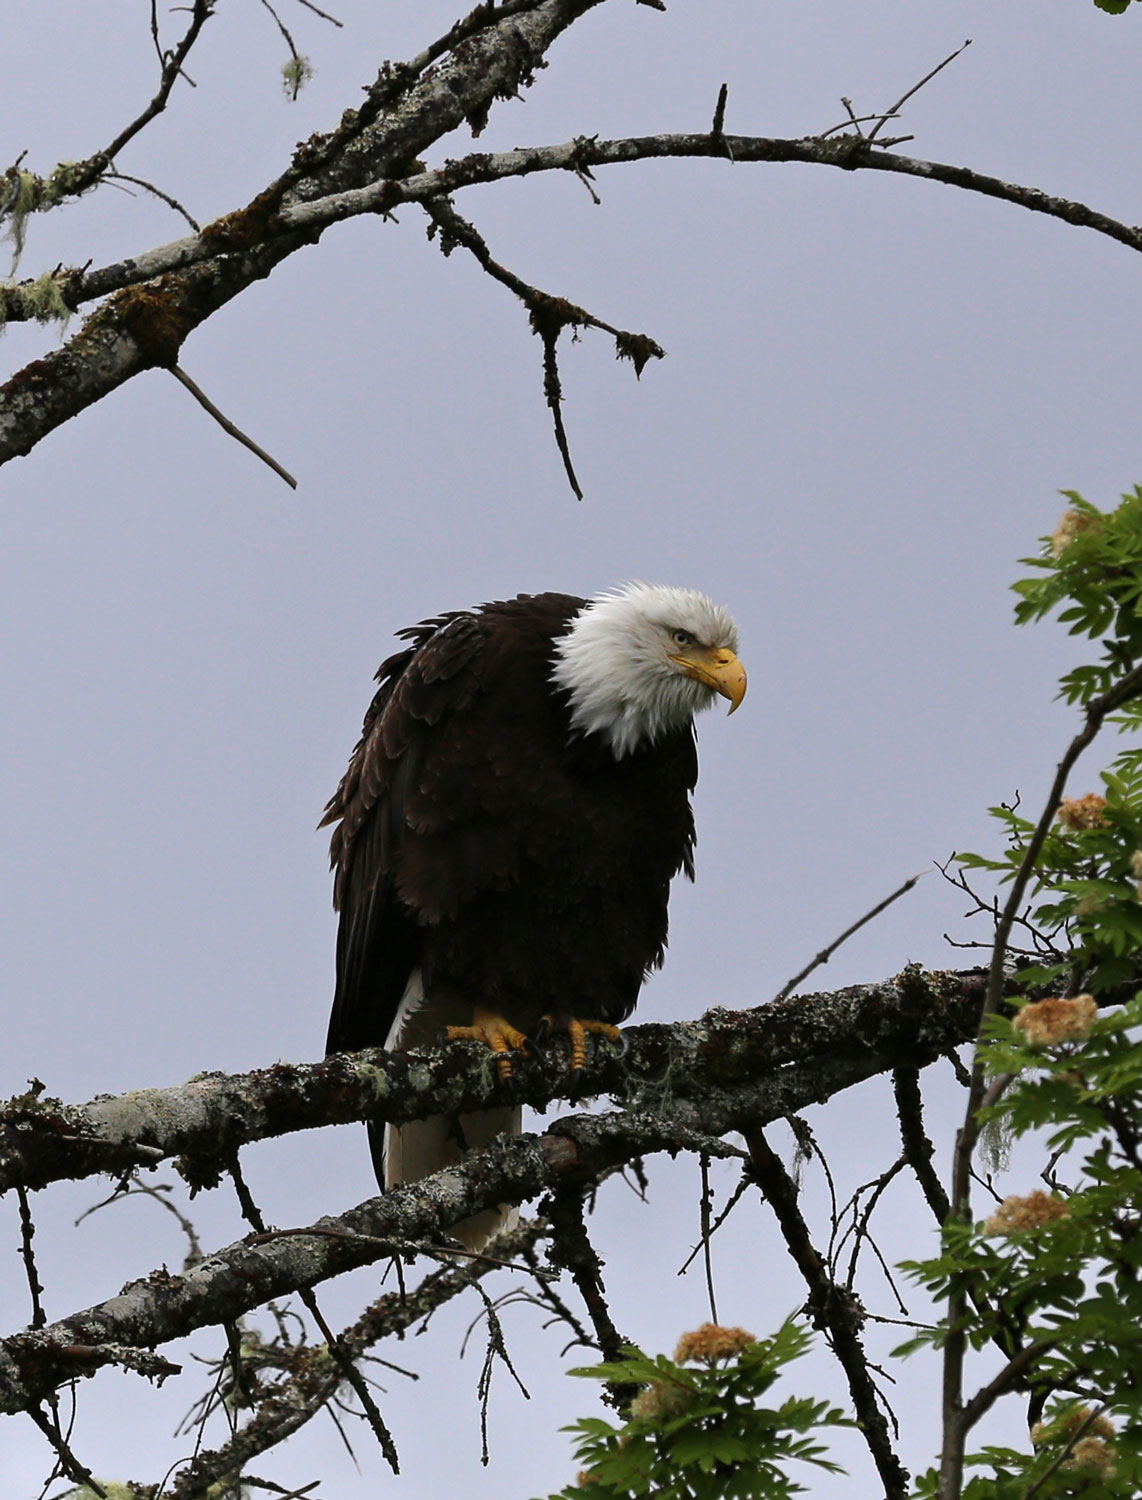 Grumpy bald eagle Southeast Alaska